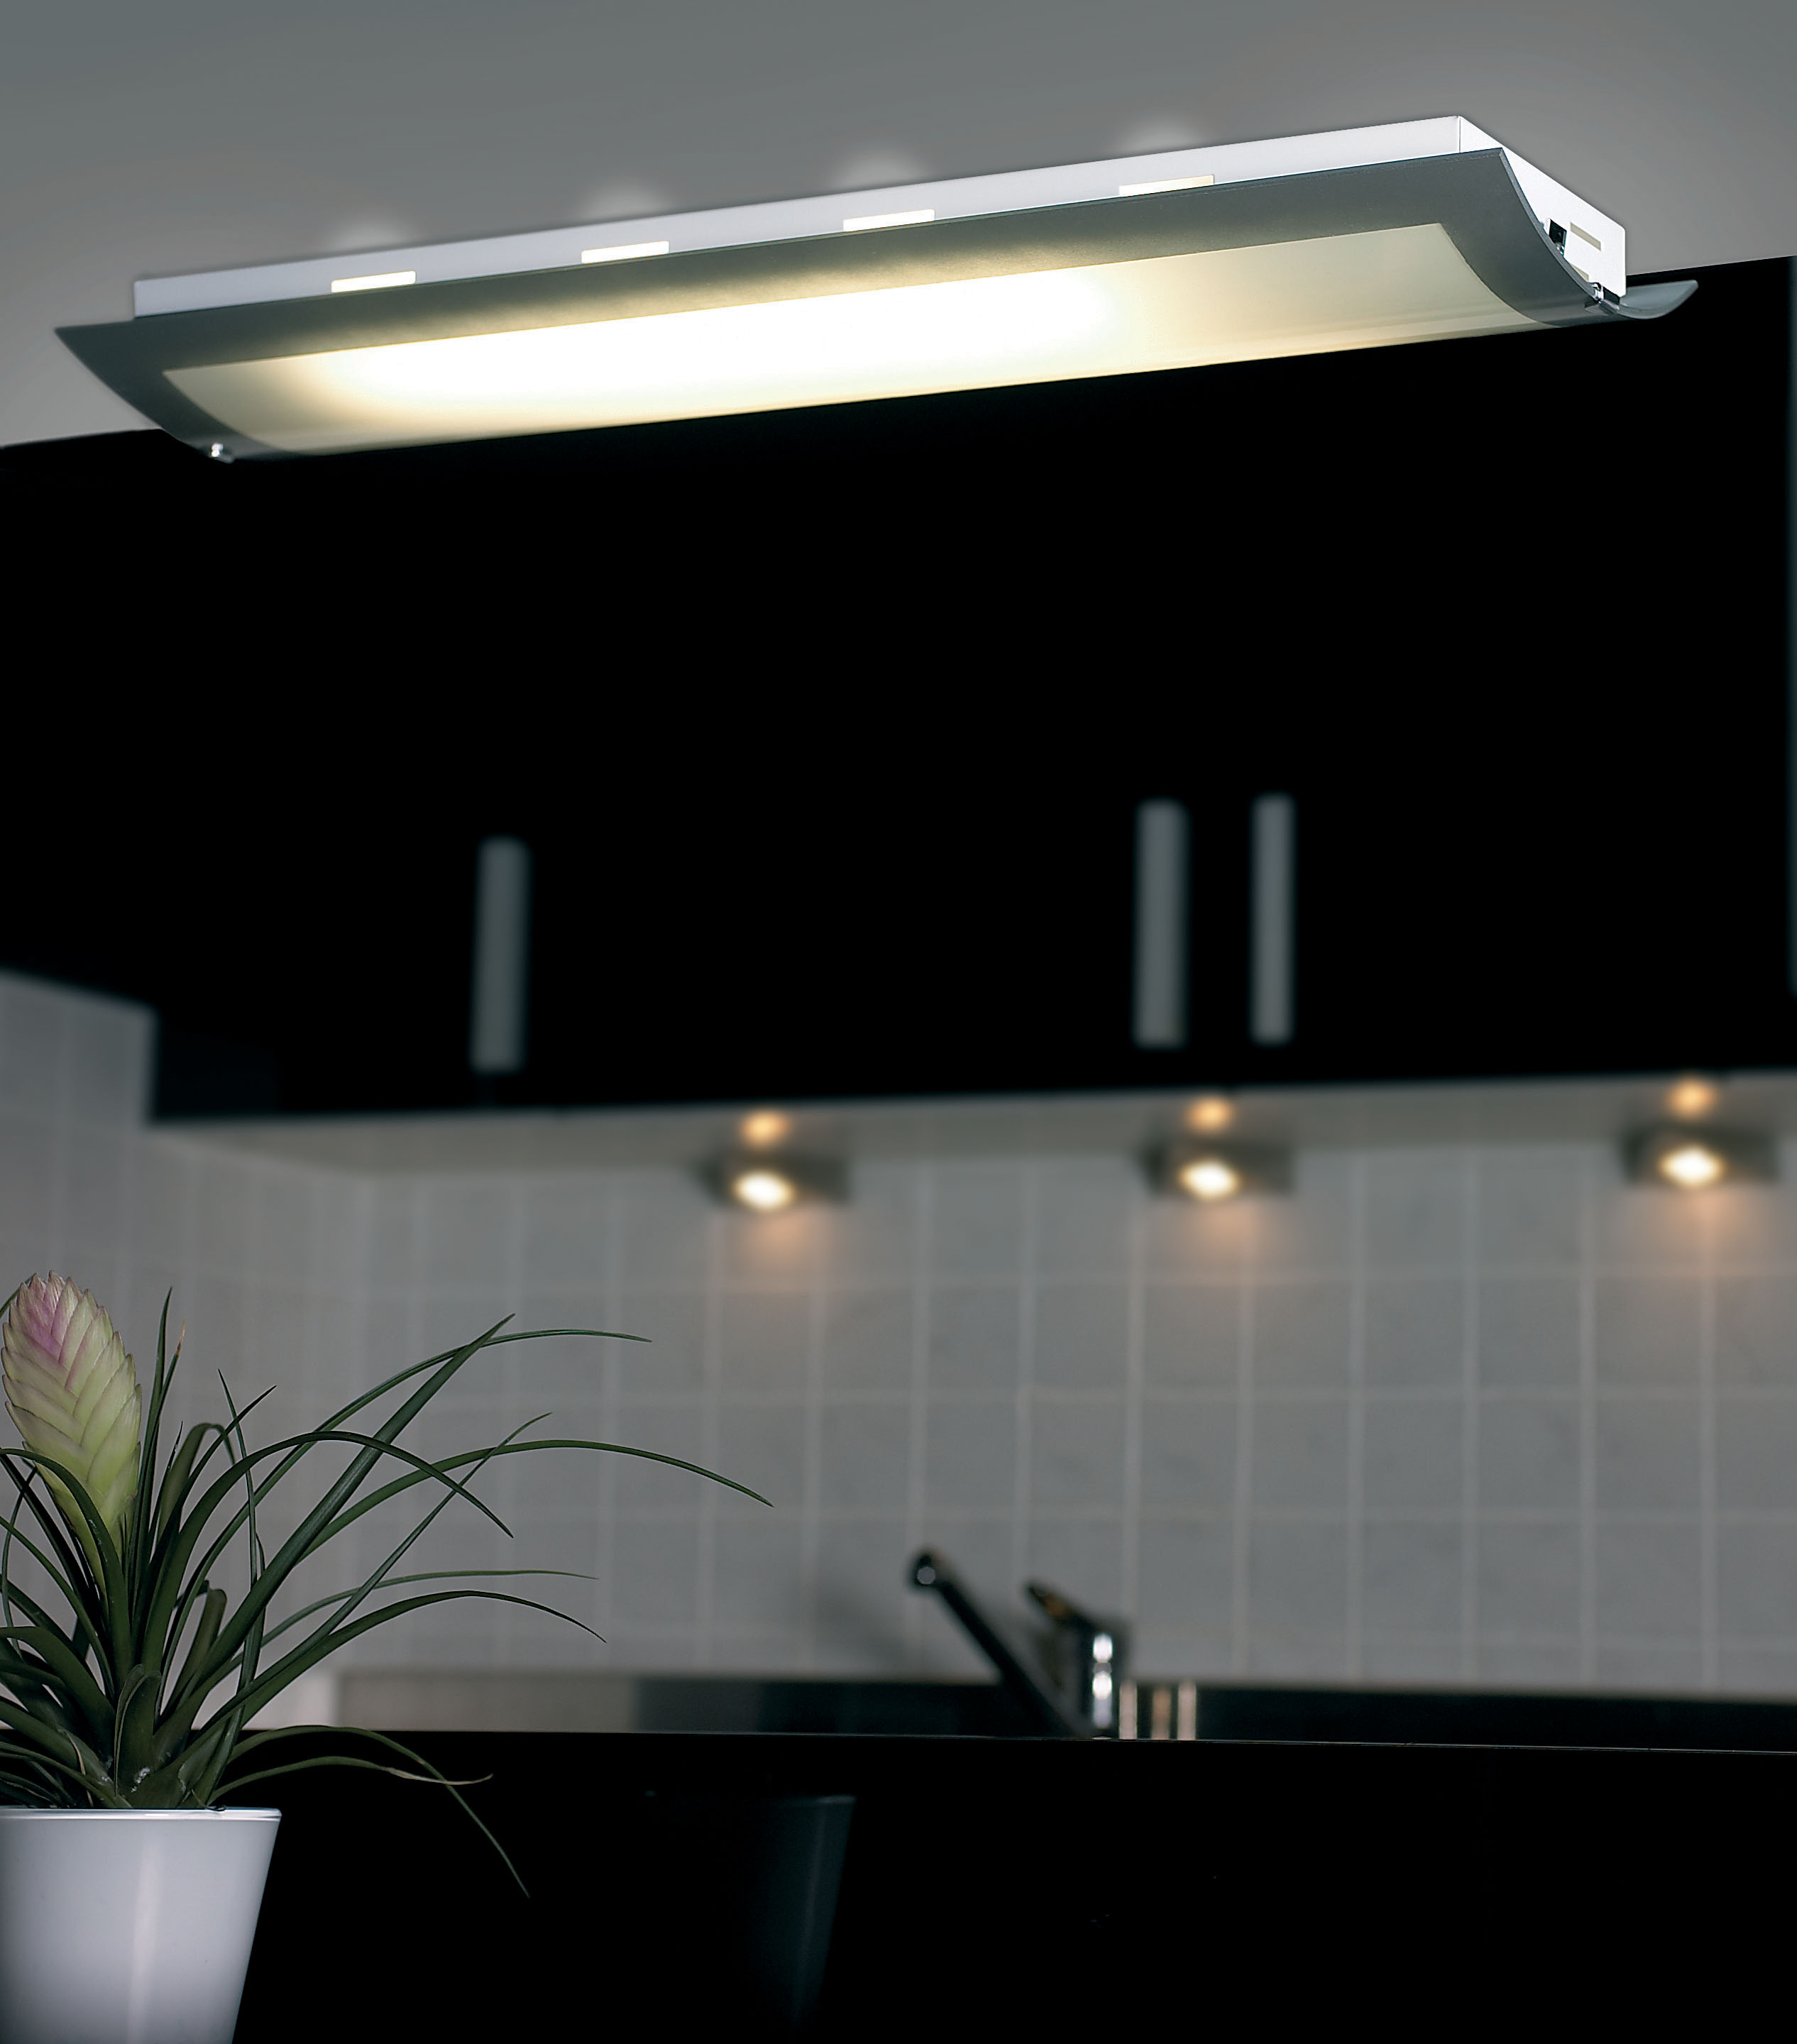 Led Kitchen Ceiling Light Fixtures Kitchen Lighting Fixtures Ceiling Led Kitchen Ceiling Lighting